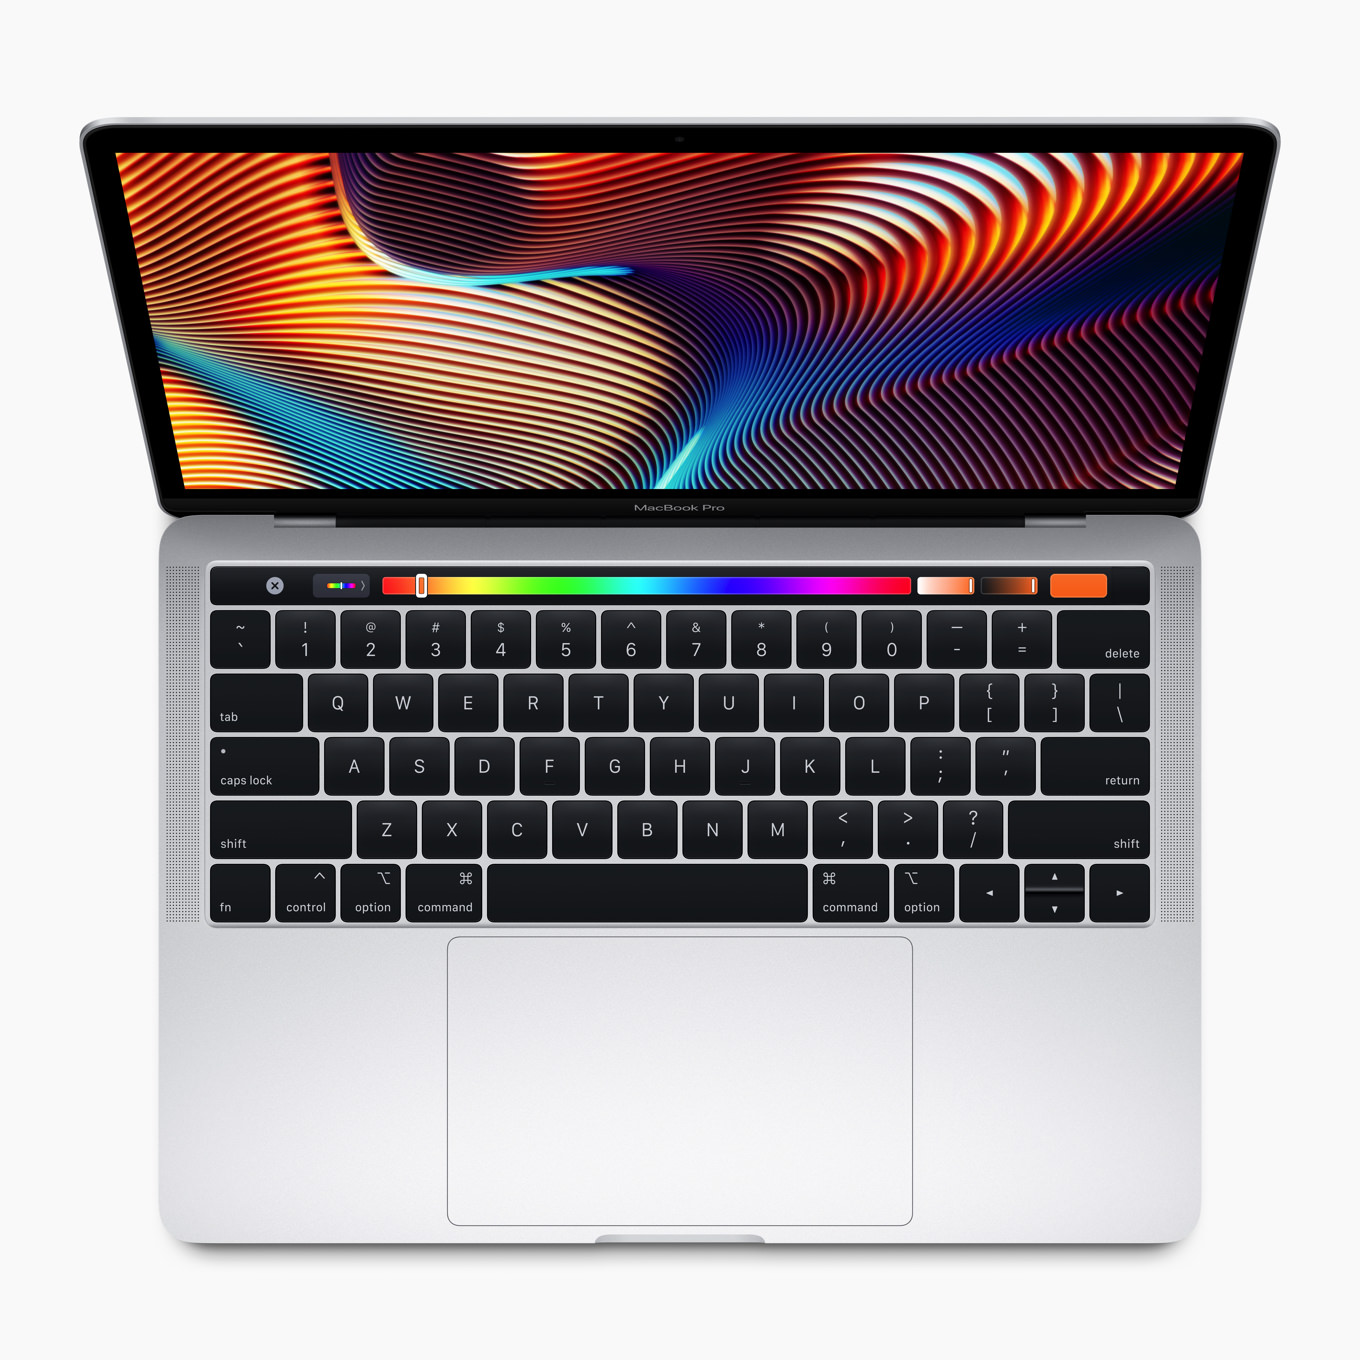 Apple-MacBook-Air-and-MacBook-Pro-update-graphics-screen-070919